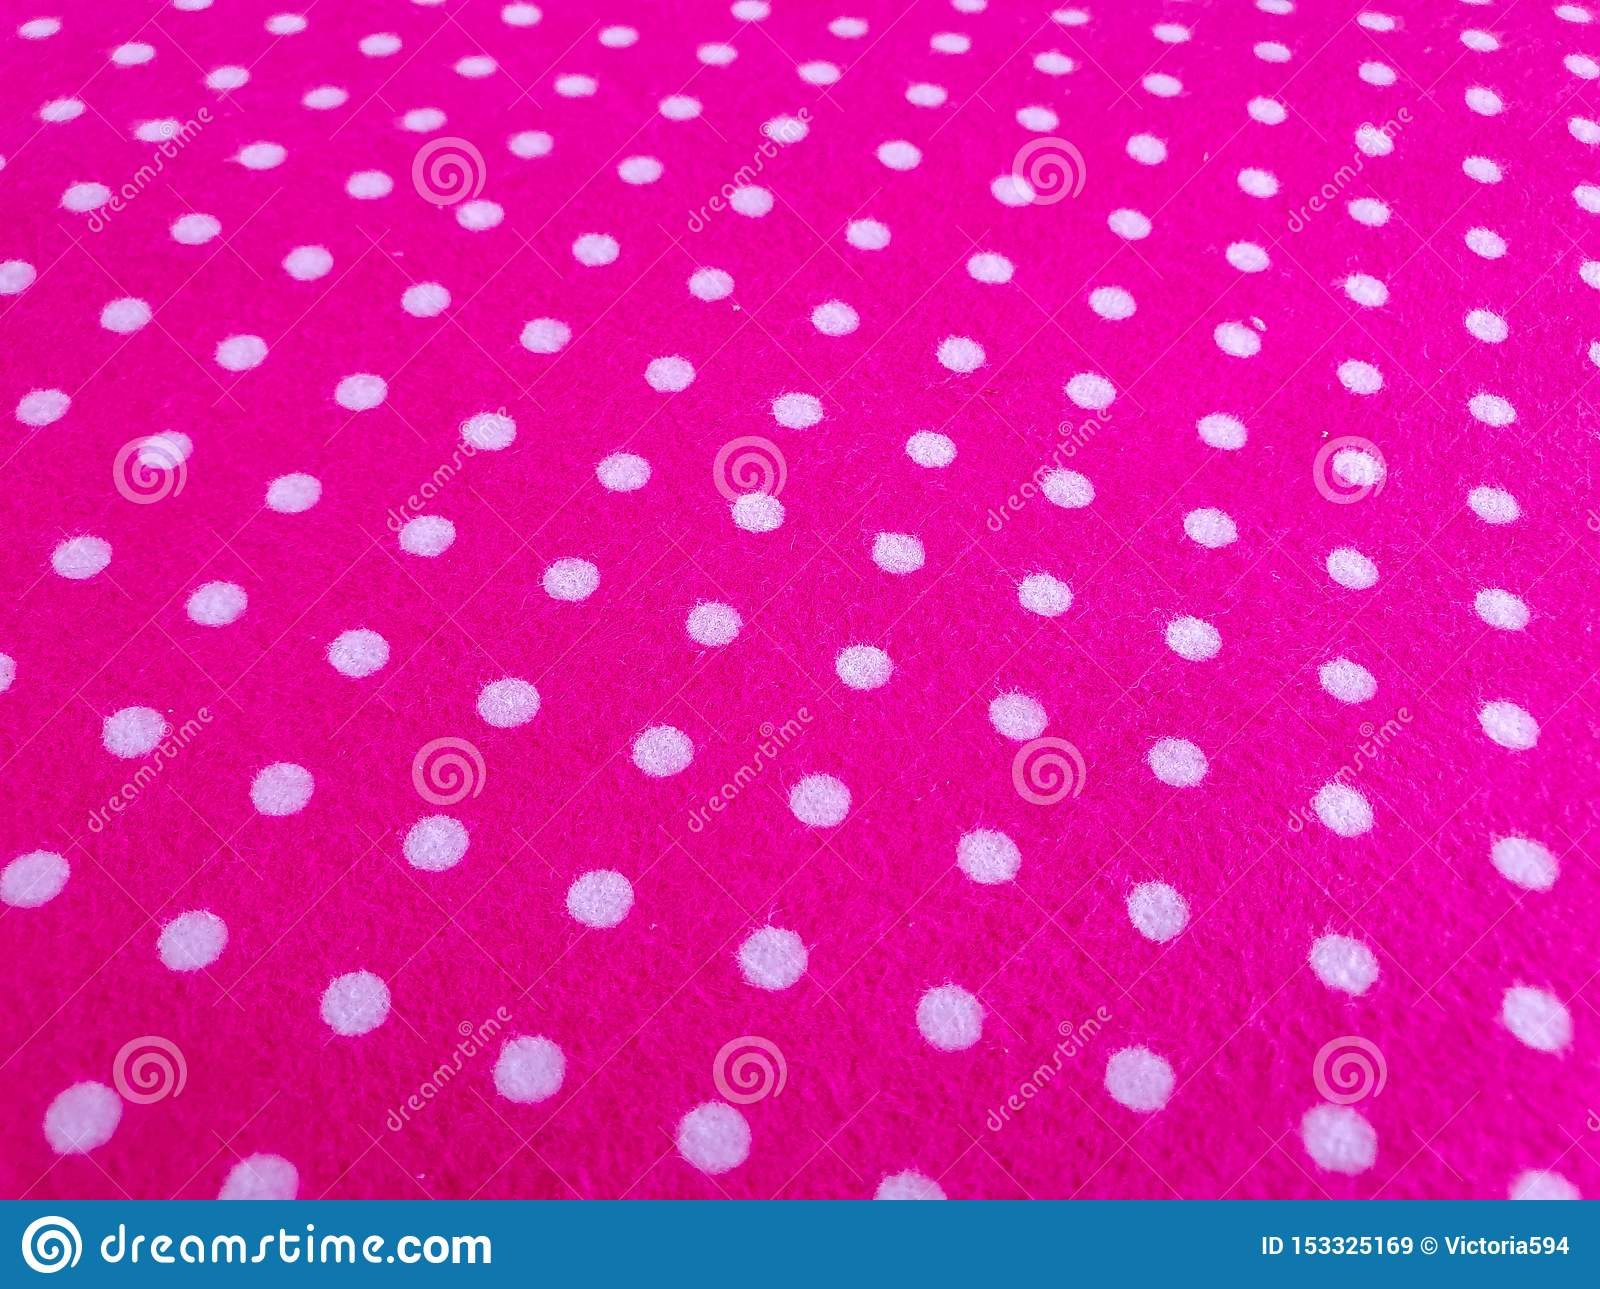 Pattern, texture, background, wallpaper. Soft bright pink cotton sample with white dots, with geometrical ornament. Close up view